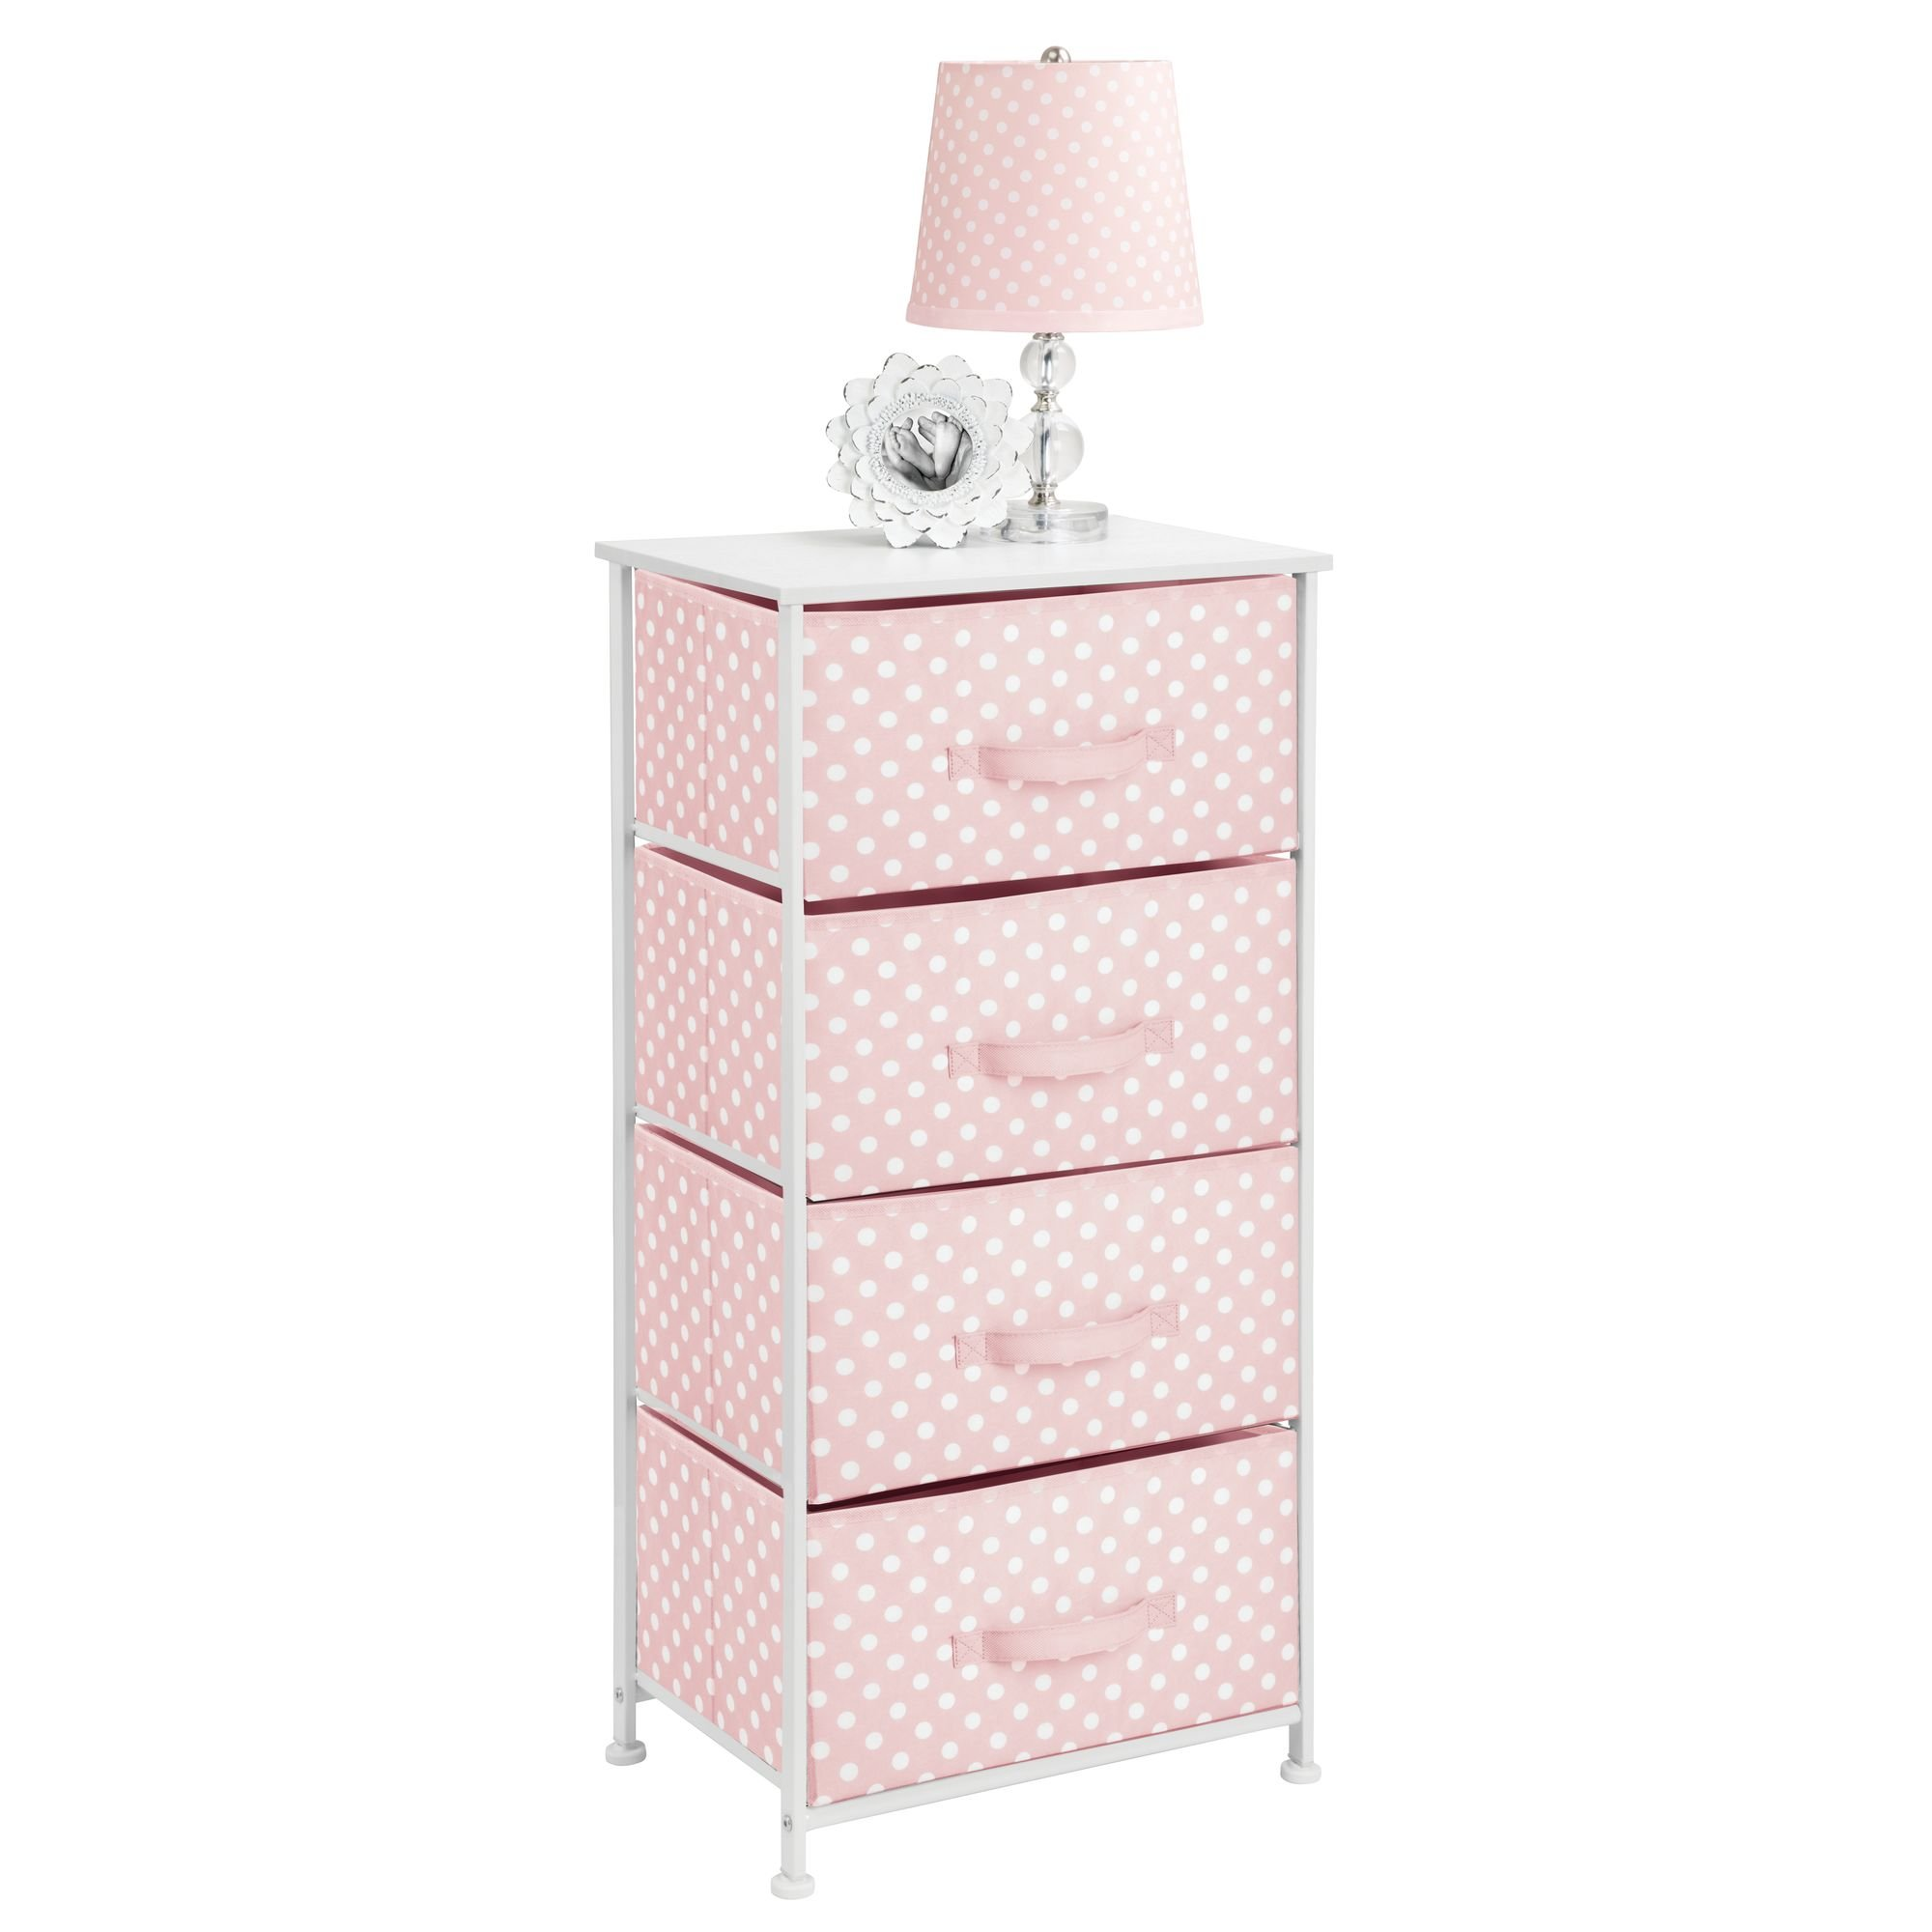 mDesign 4-Drawer Vertical Dresser Storage Tower - Sturdy Steel Frame, Wood Top and Easy Pull Fabric Bins - Multi-Bin Organizer Unit for Child/Kids Bedroom or Nursery - Light Pink with White Polka Dots